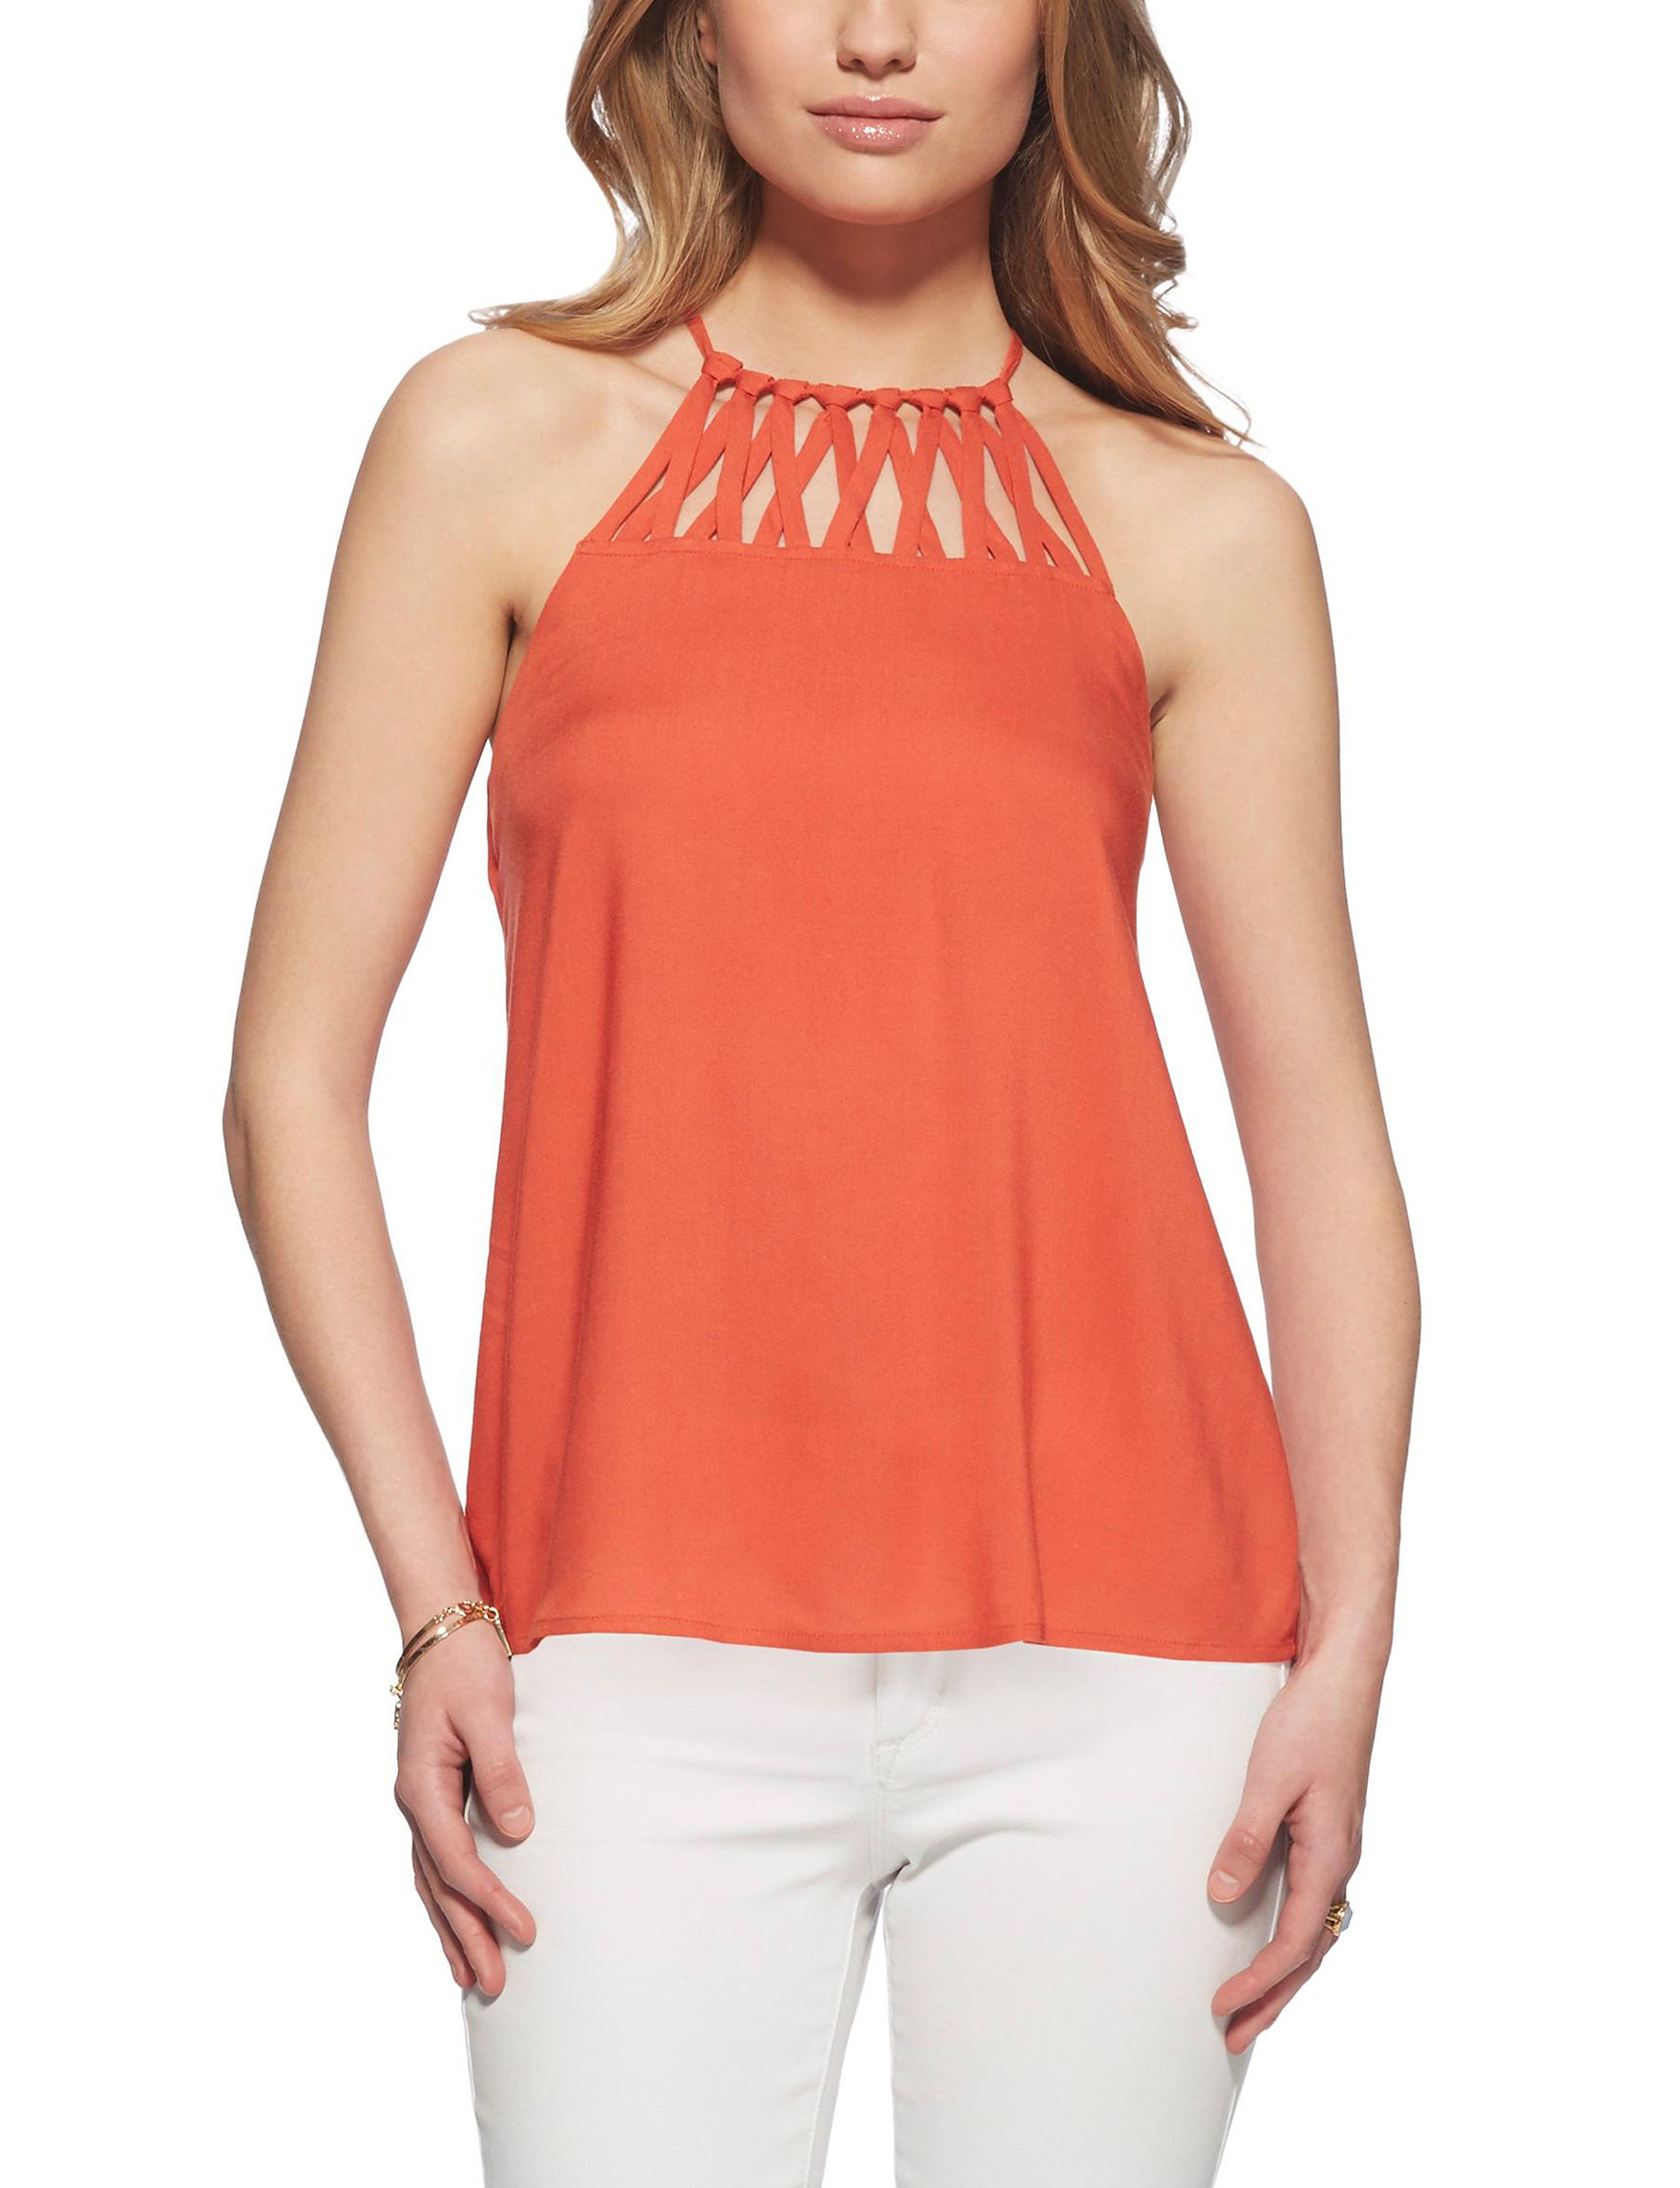 Jessica Simpson Orange Shirts & Blouses